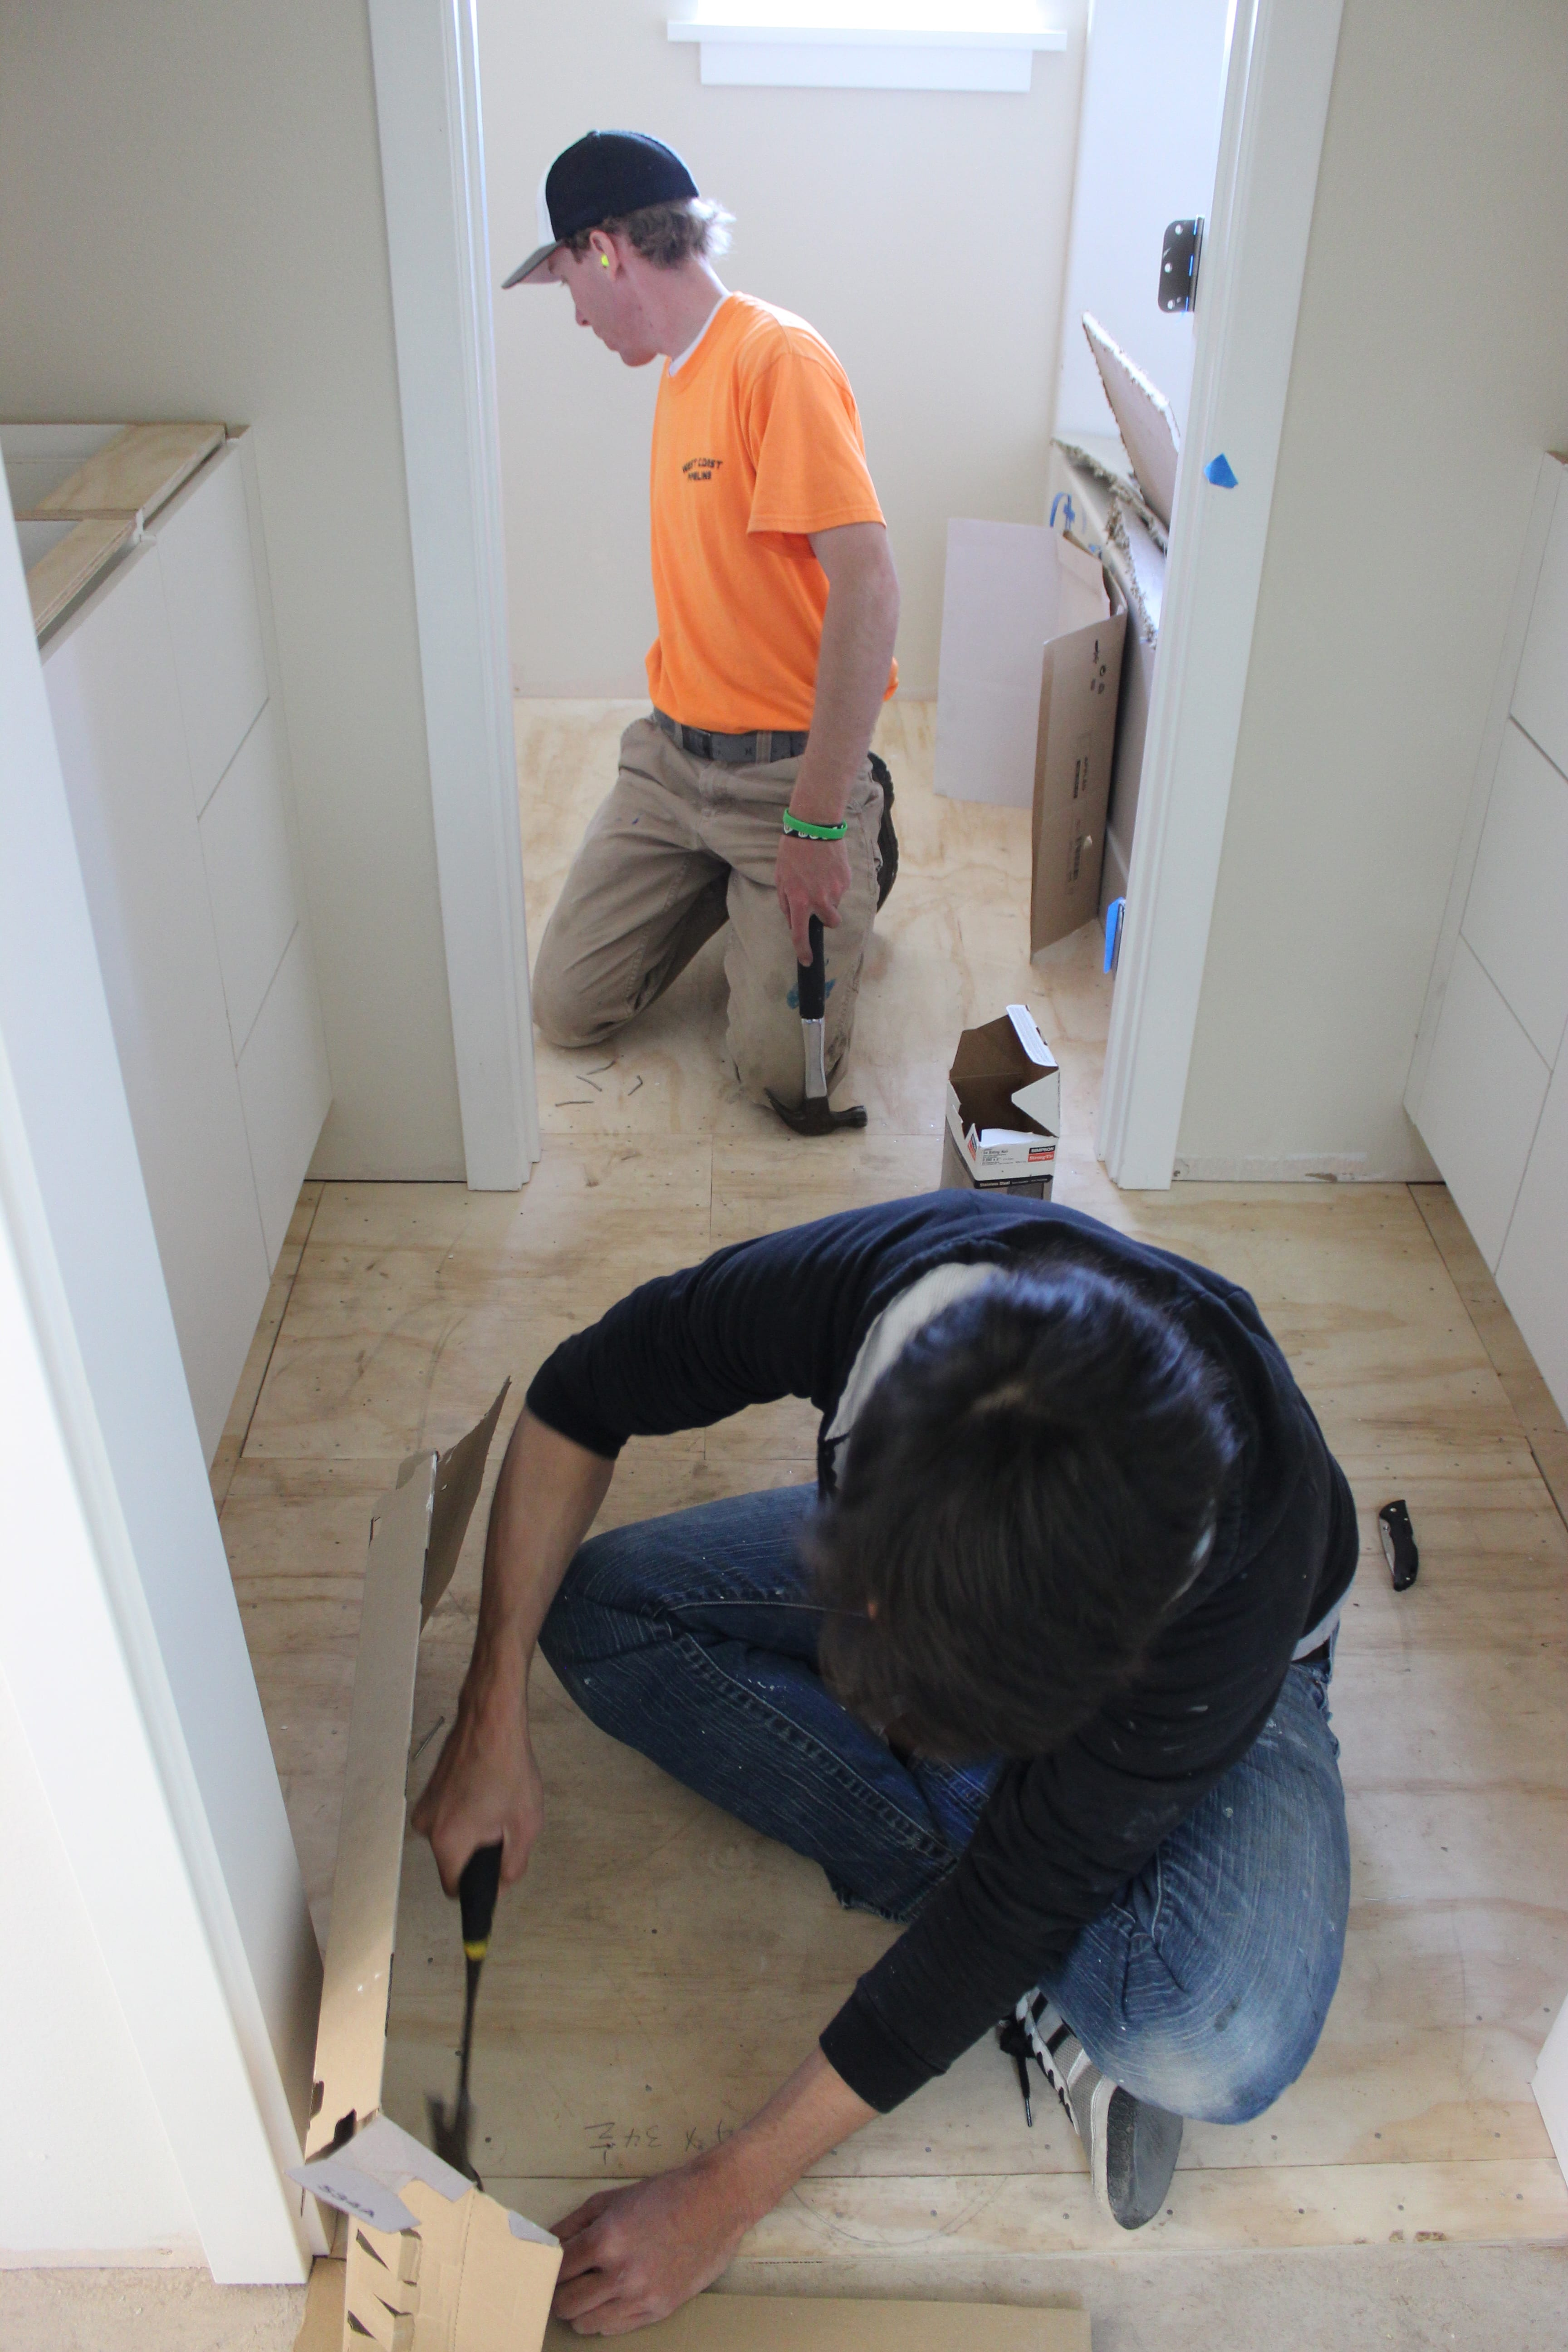 Nailing the plywood in the bathroom